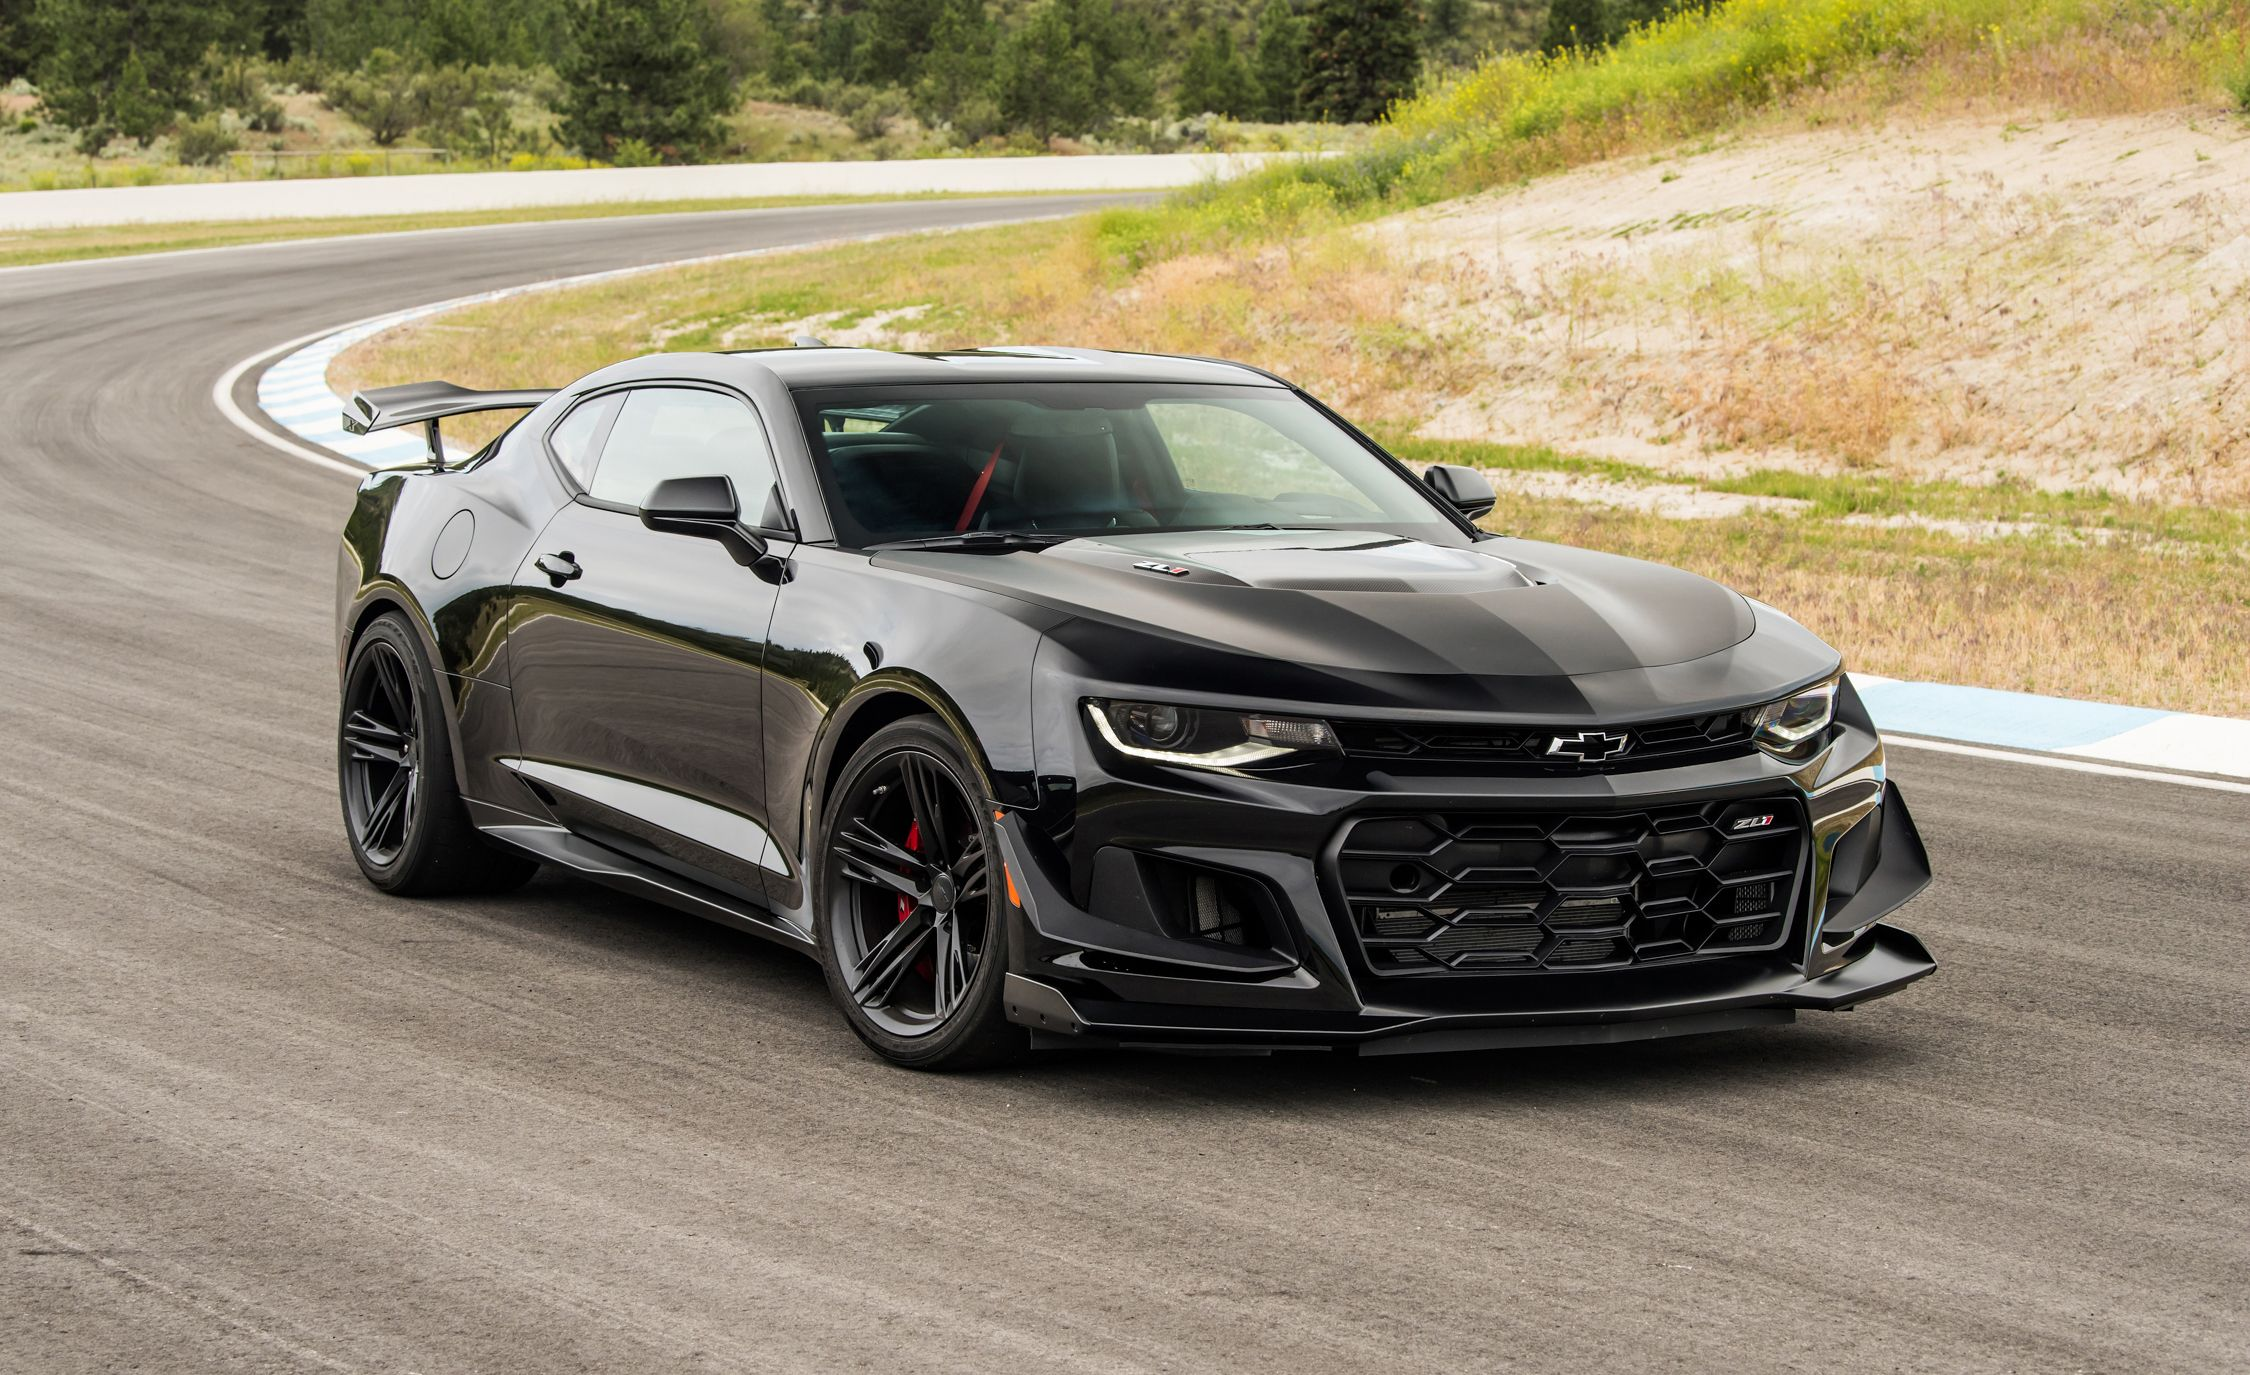 Hellcat Widebody Vs Zl1 1le Page 3 Dodge Challenger